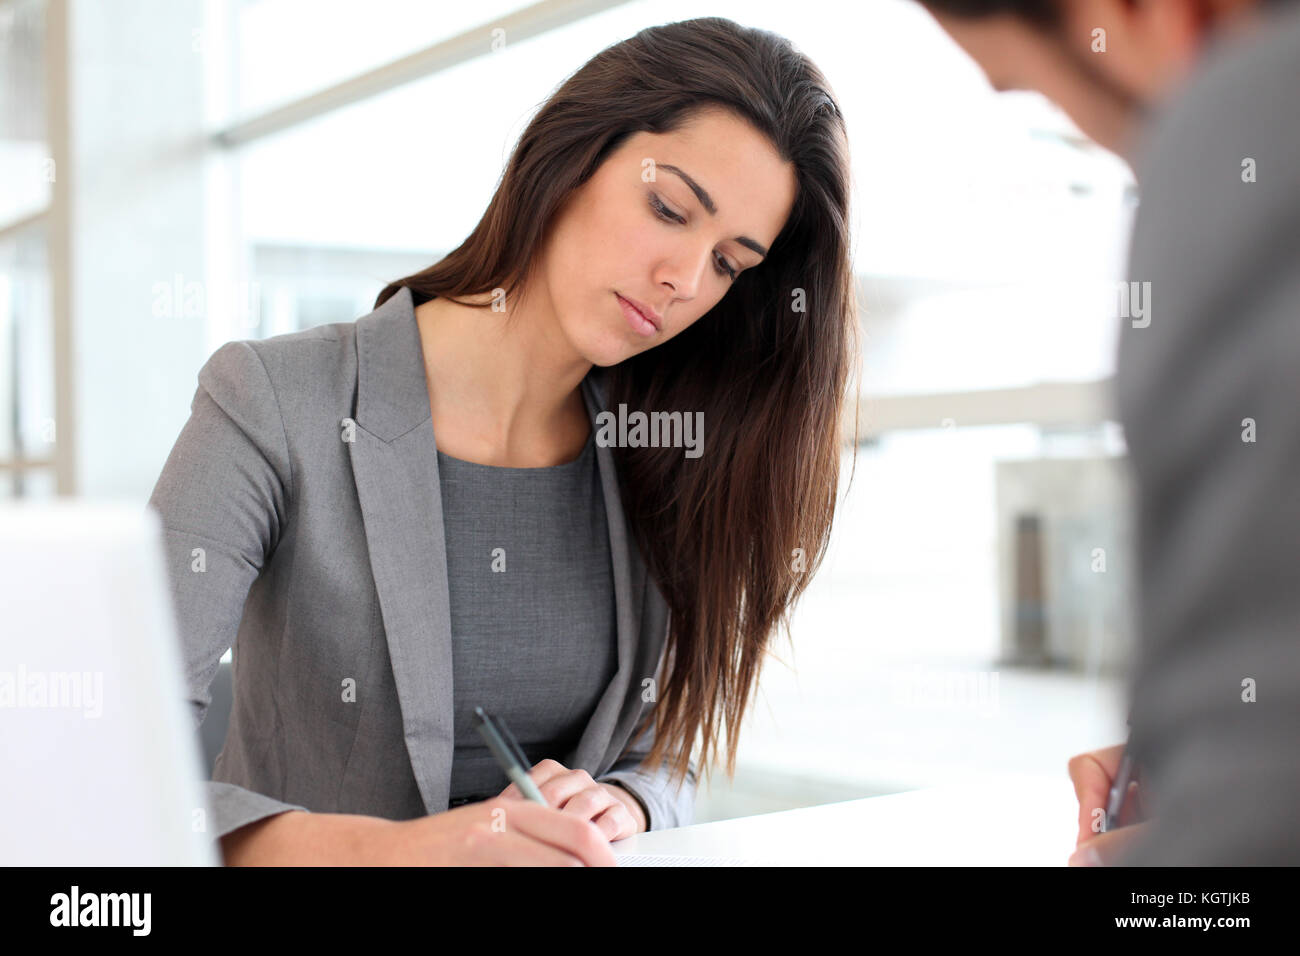 Businesswoman writing on document after meeting - Stock Image